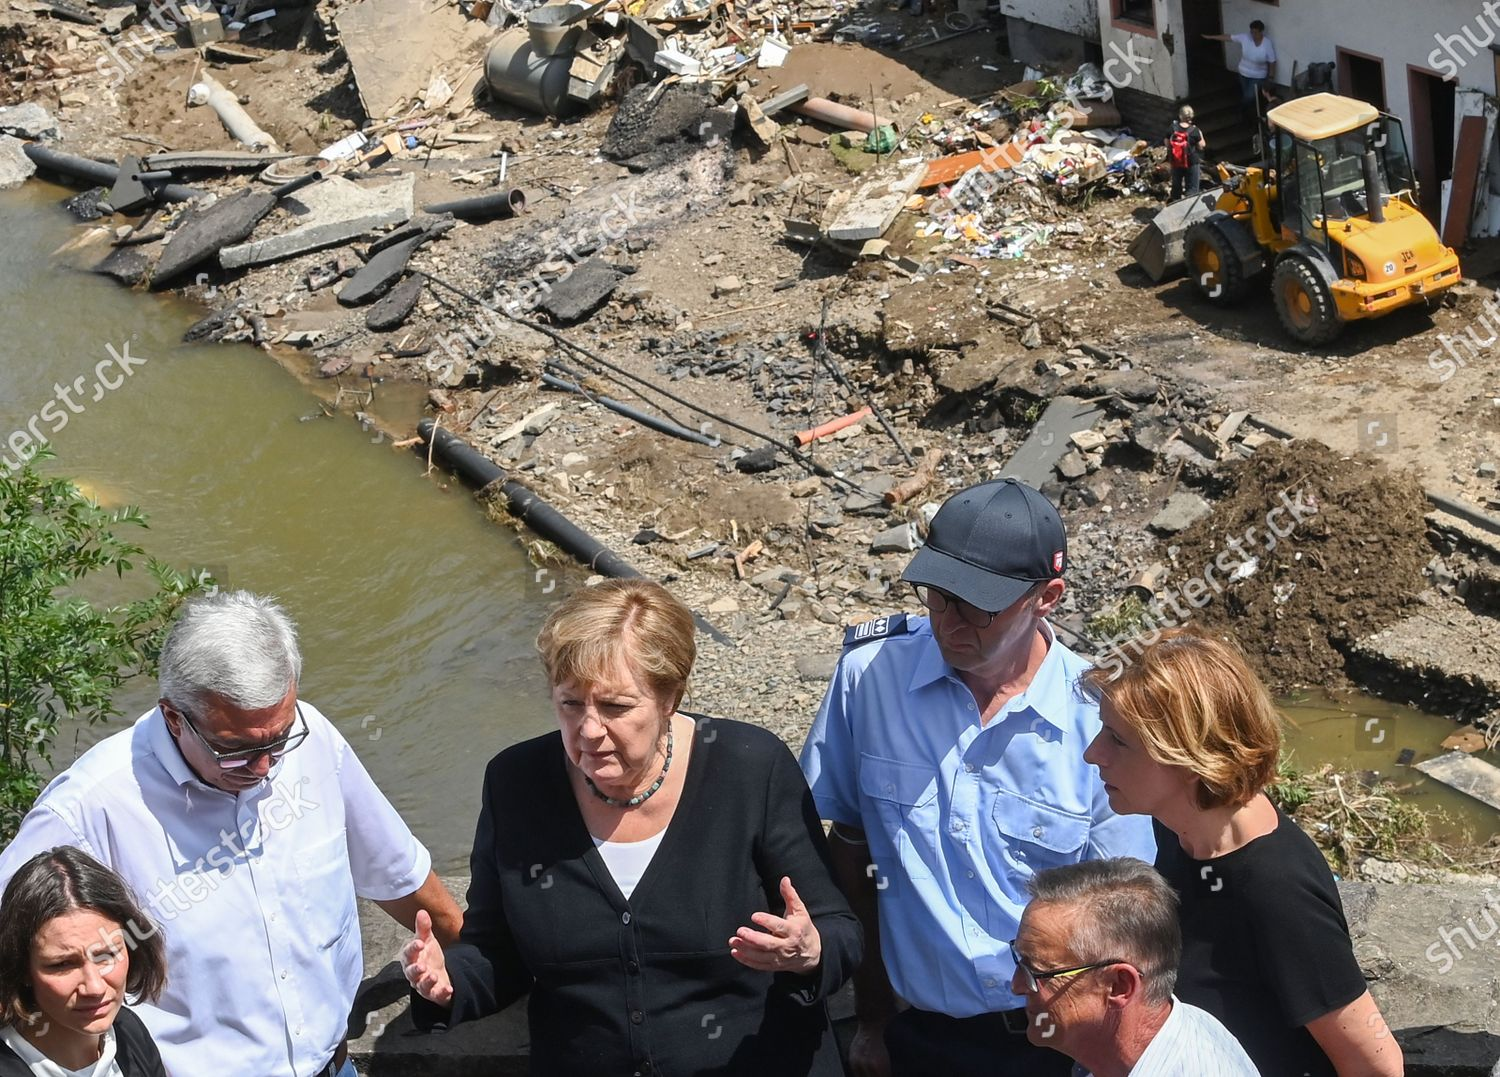 Stock photo of Flooding in Germany, Schuld - 18 Jul 2021